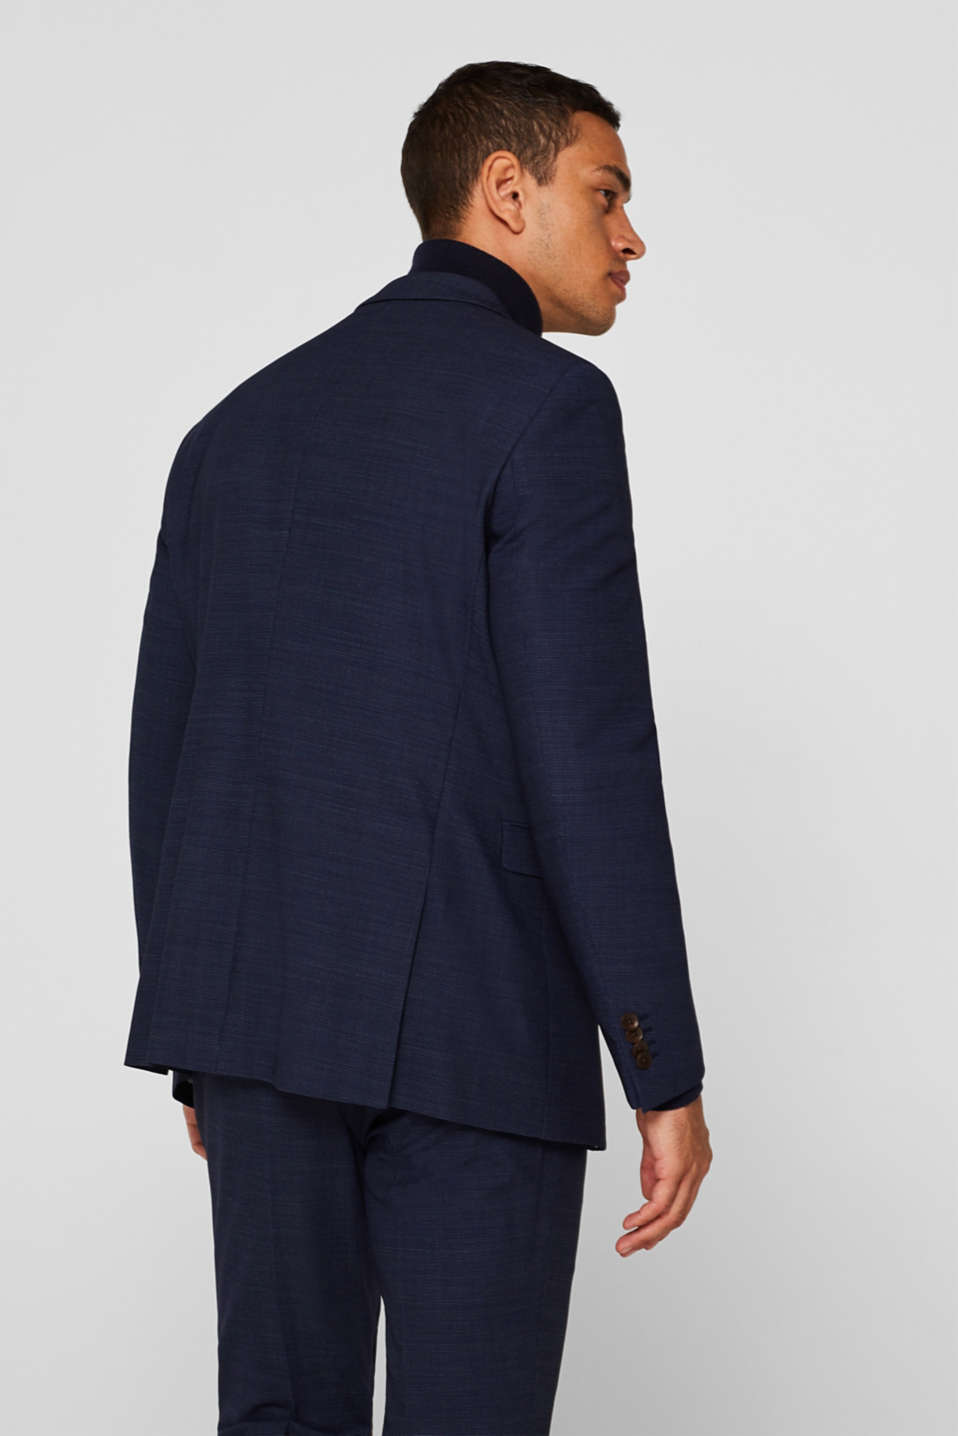 Blazers suit, NAVY, detail image number 3